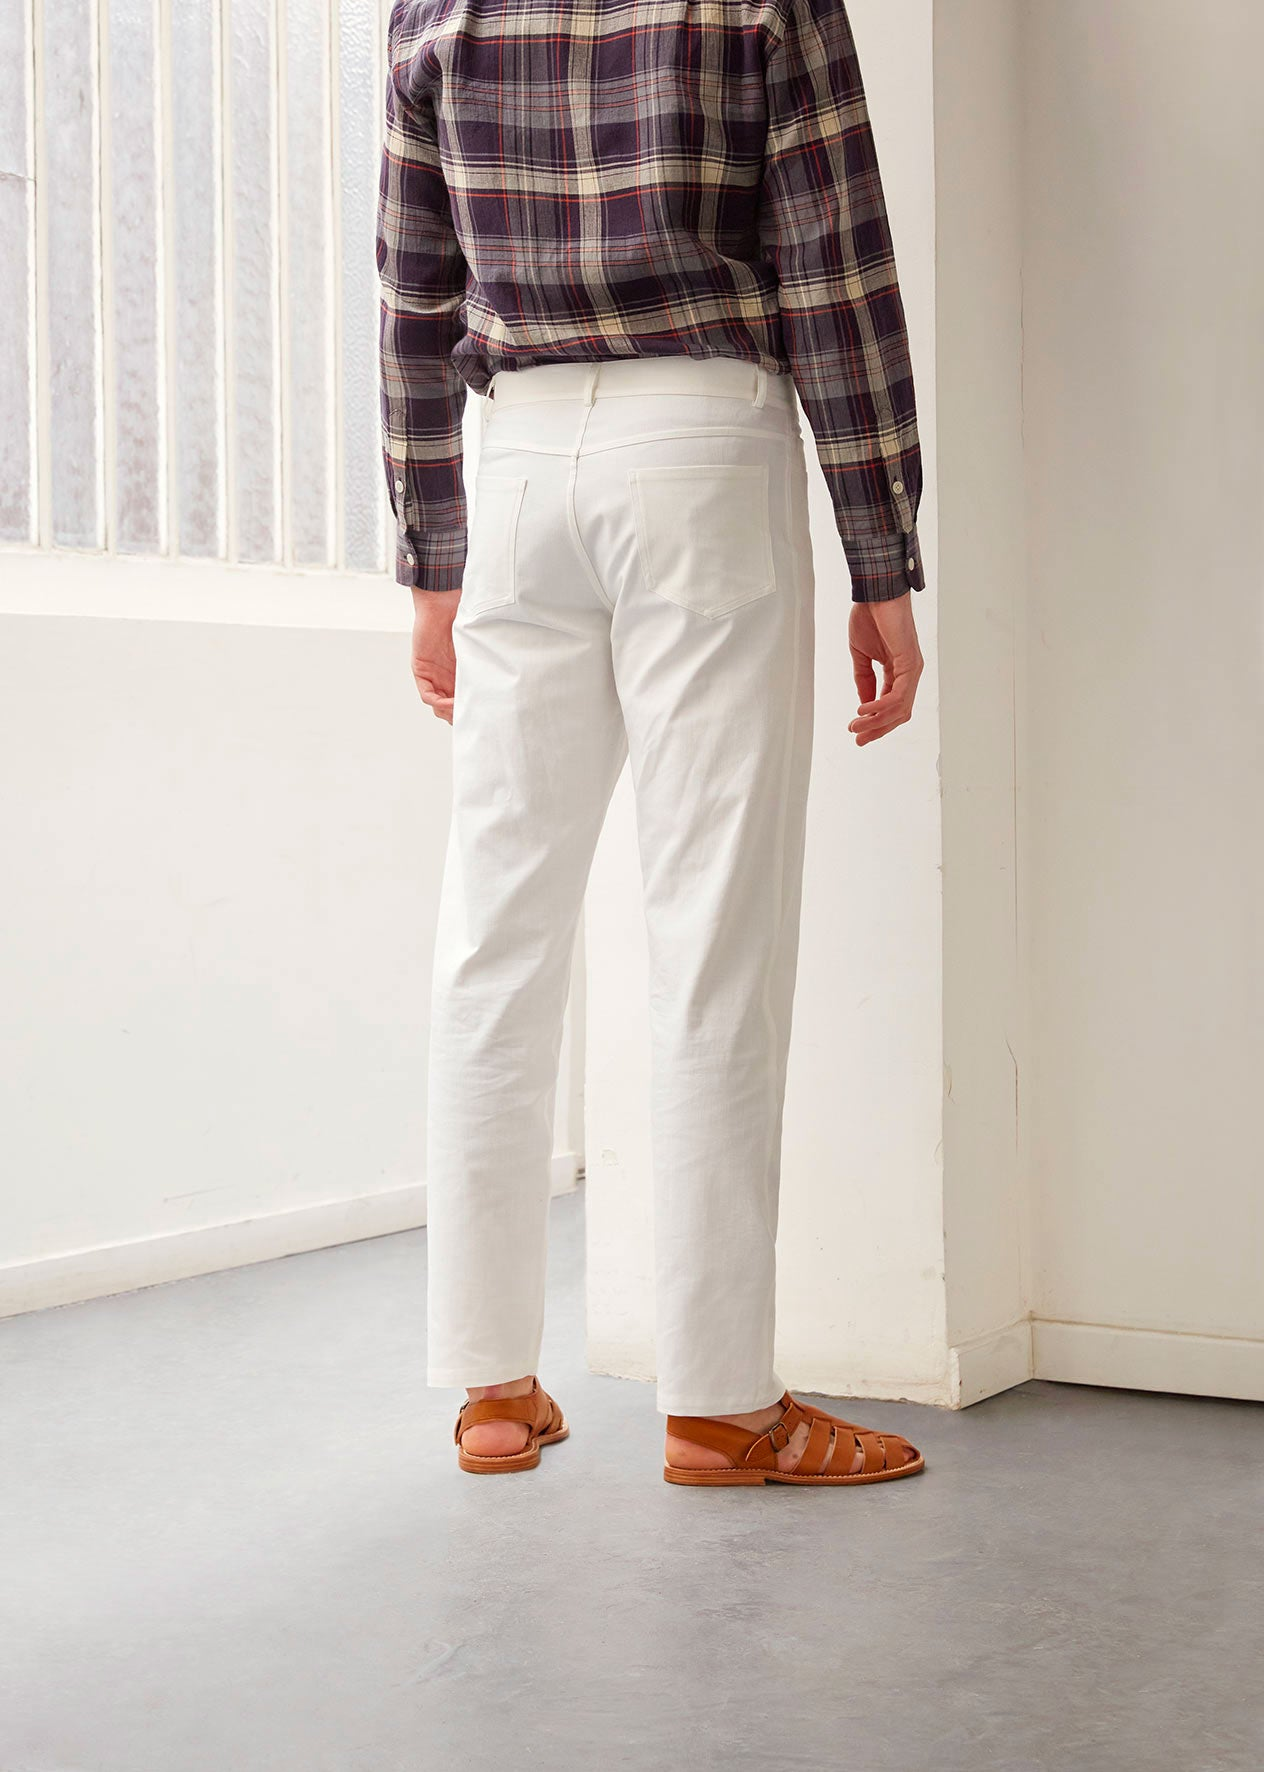 5 pocket trousers - Organic cotton twill - White - De Bonne Facture